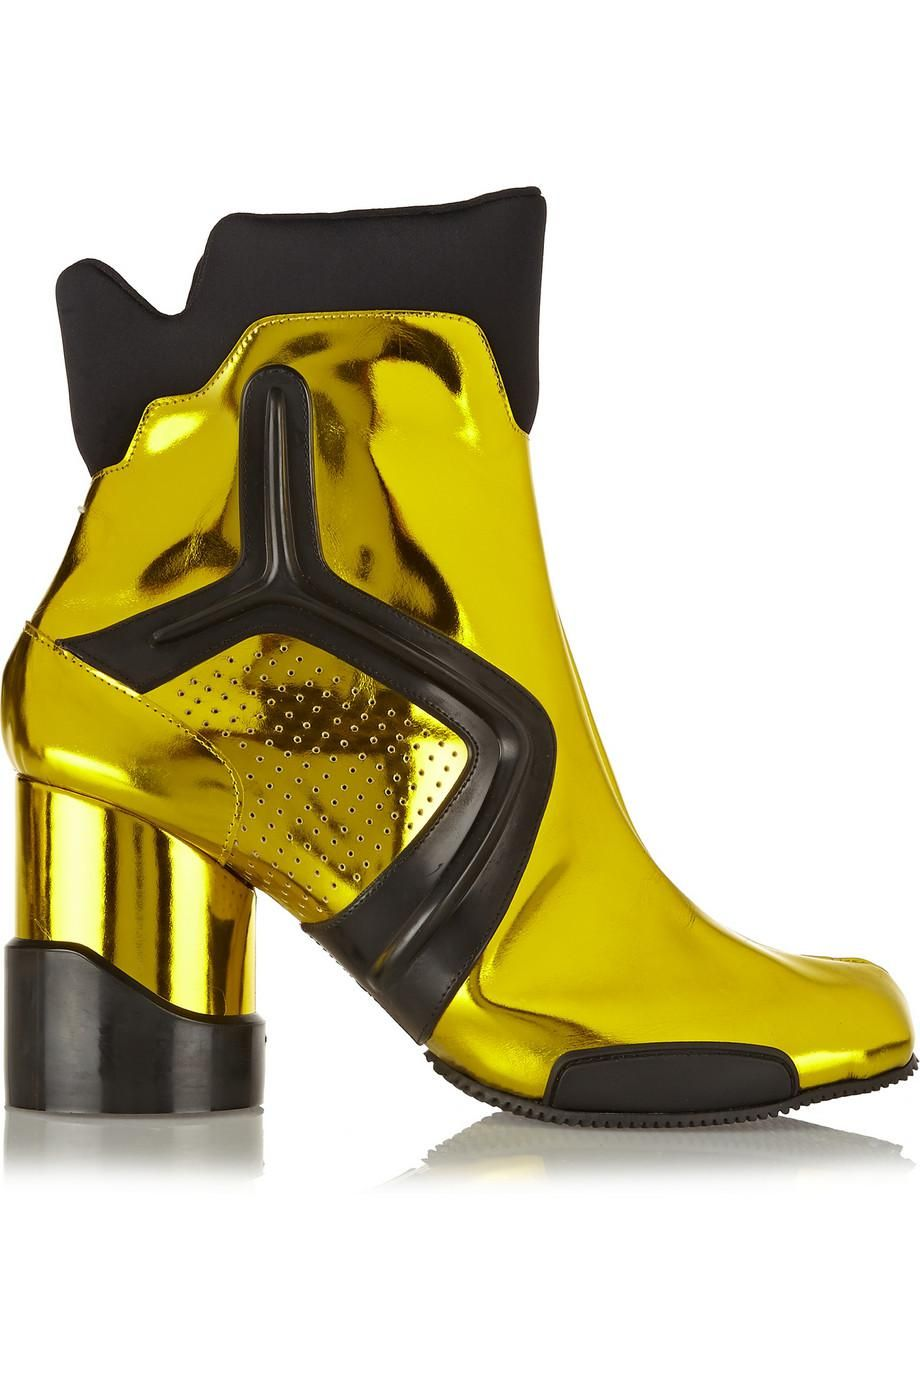 New Concept Maison Margiela Ankle Boots Leather Bright Yellow Tabi Neon Metallic